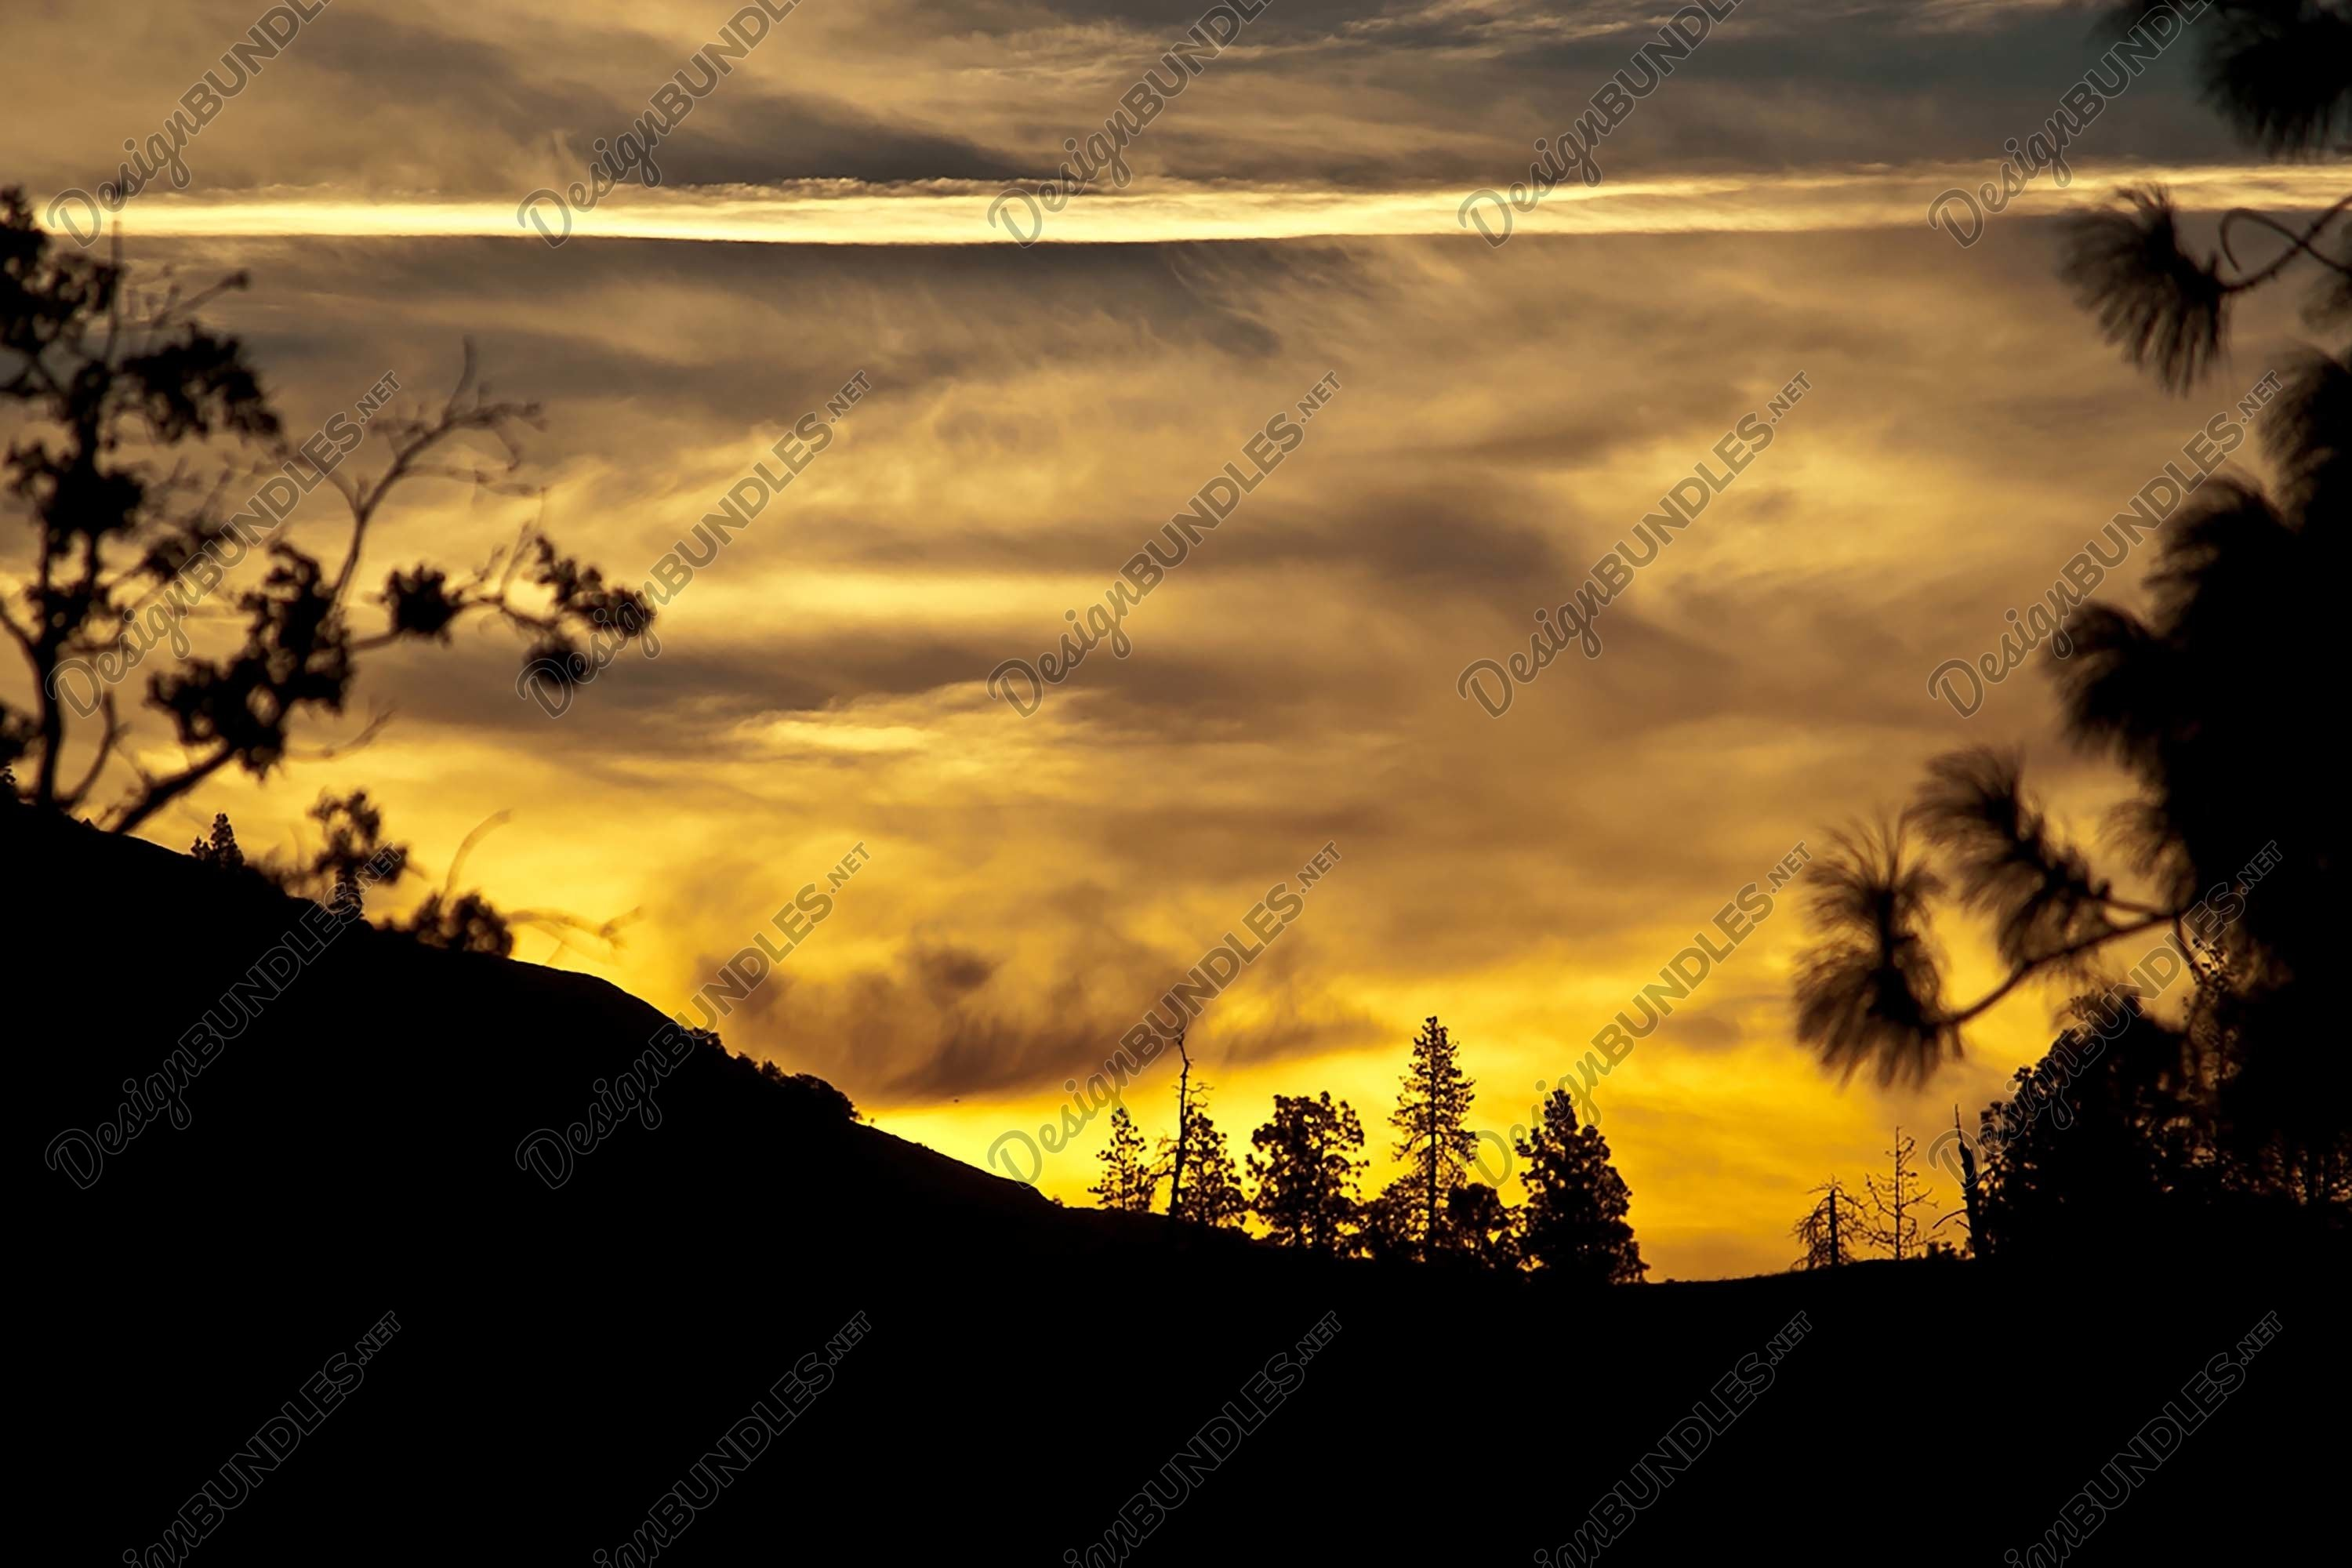 Stock Photo - Sunset over the mountains example image 1